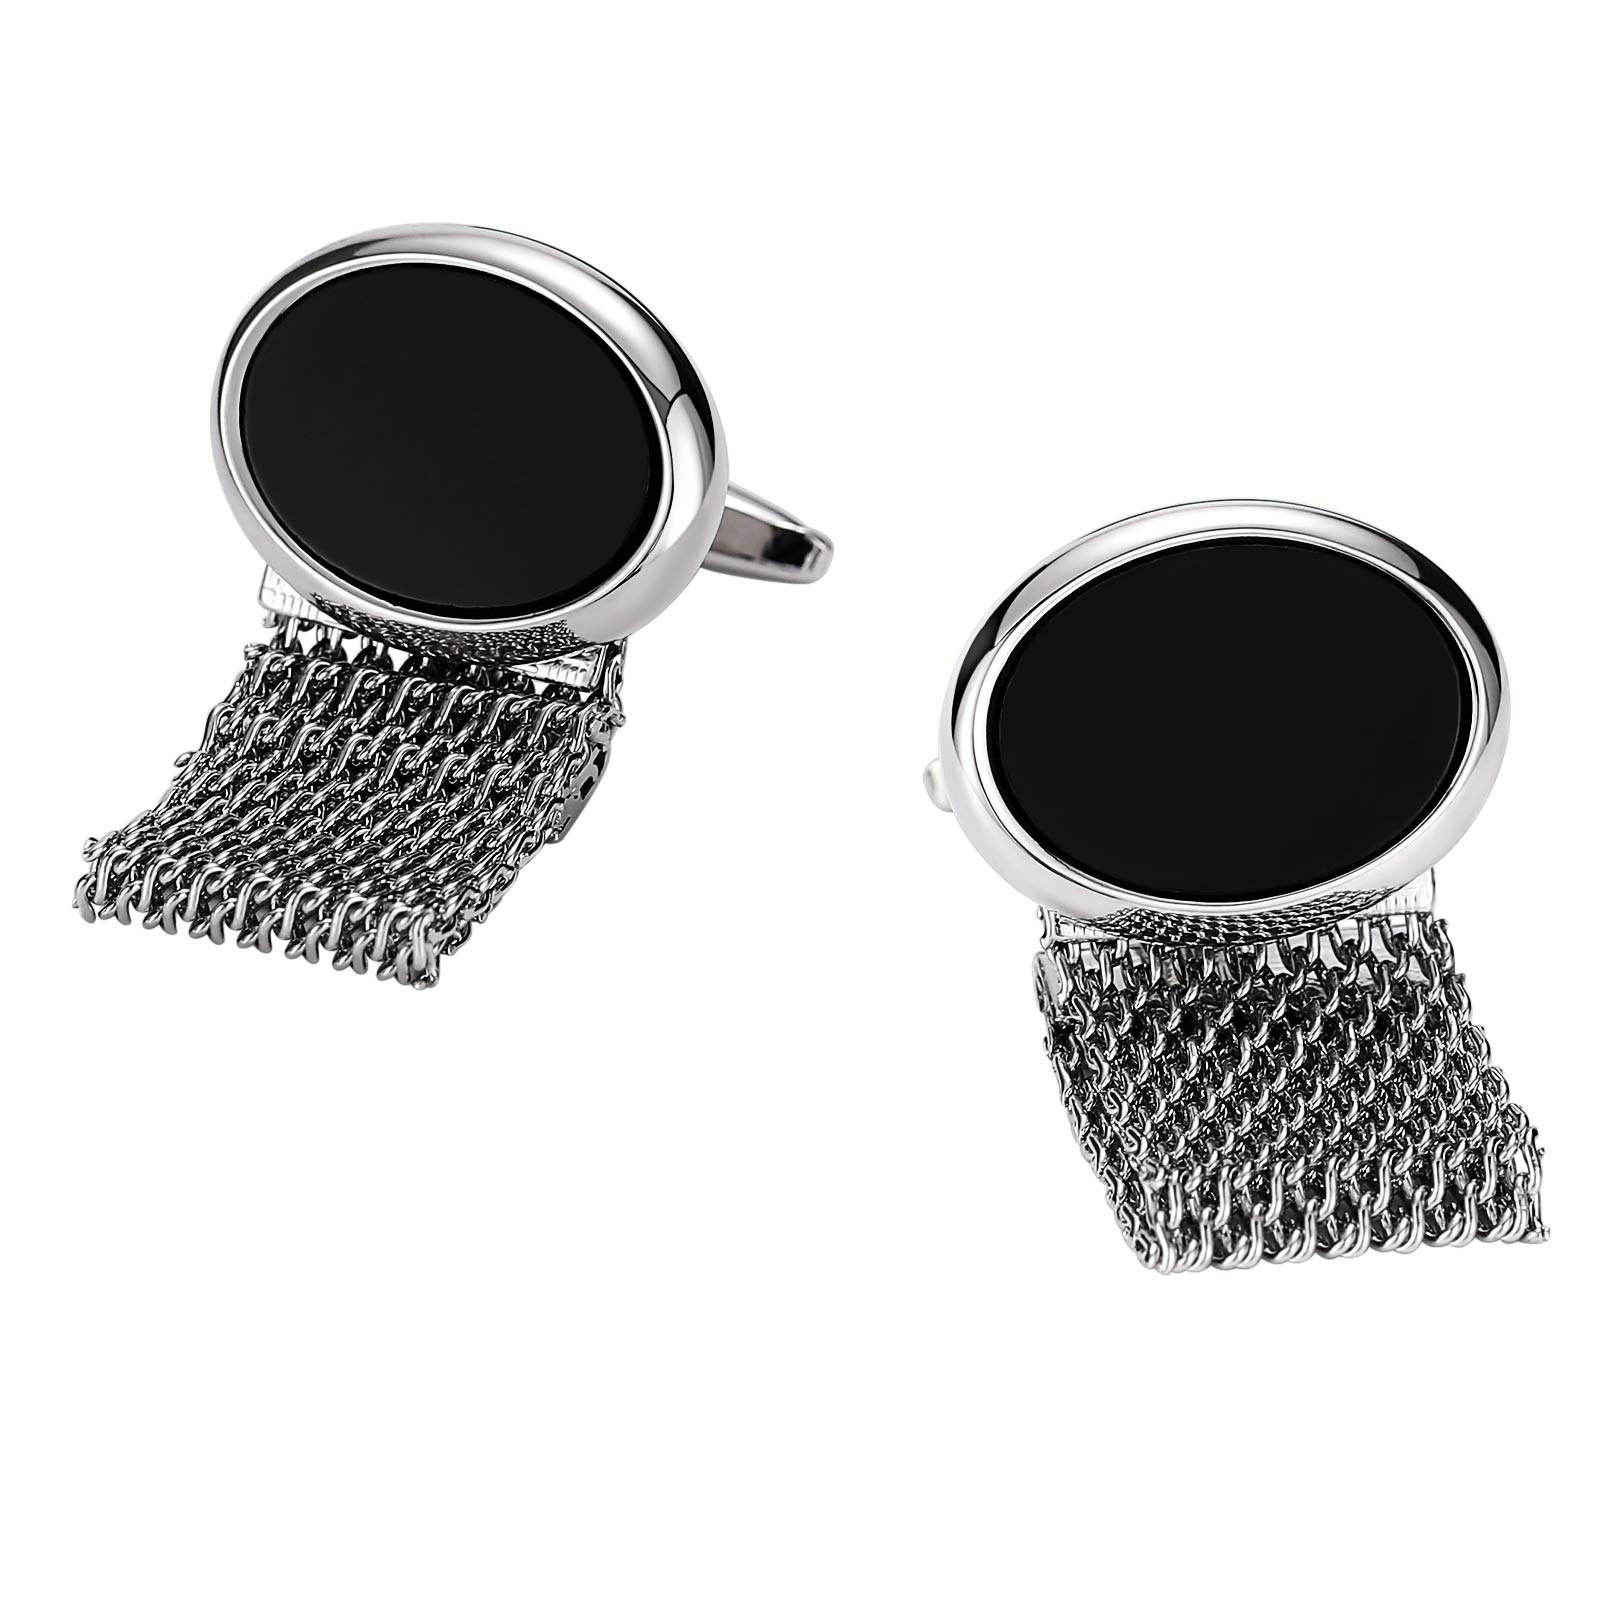 Aokarry Cufflinks Wedding-Men's Stainless Steel Oval with Hollow Chain Cuff Links Silver Black